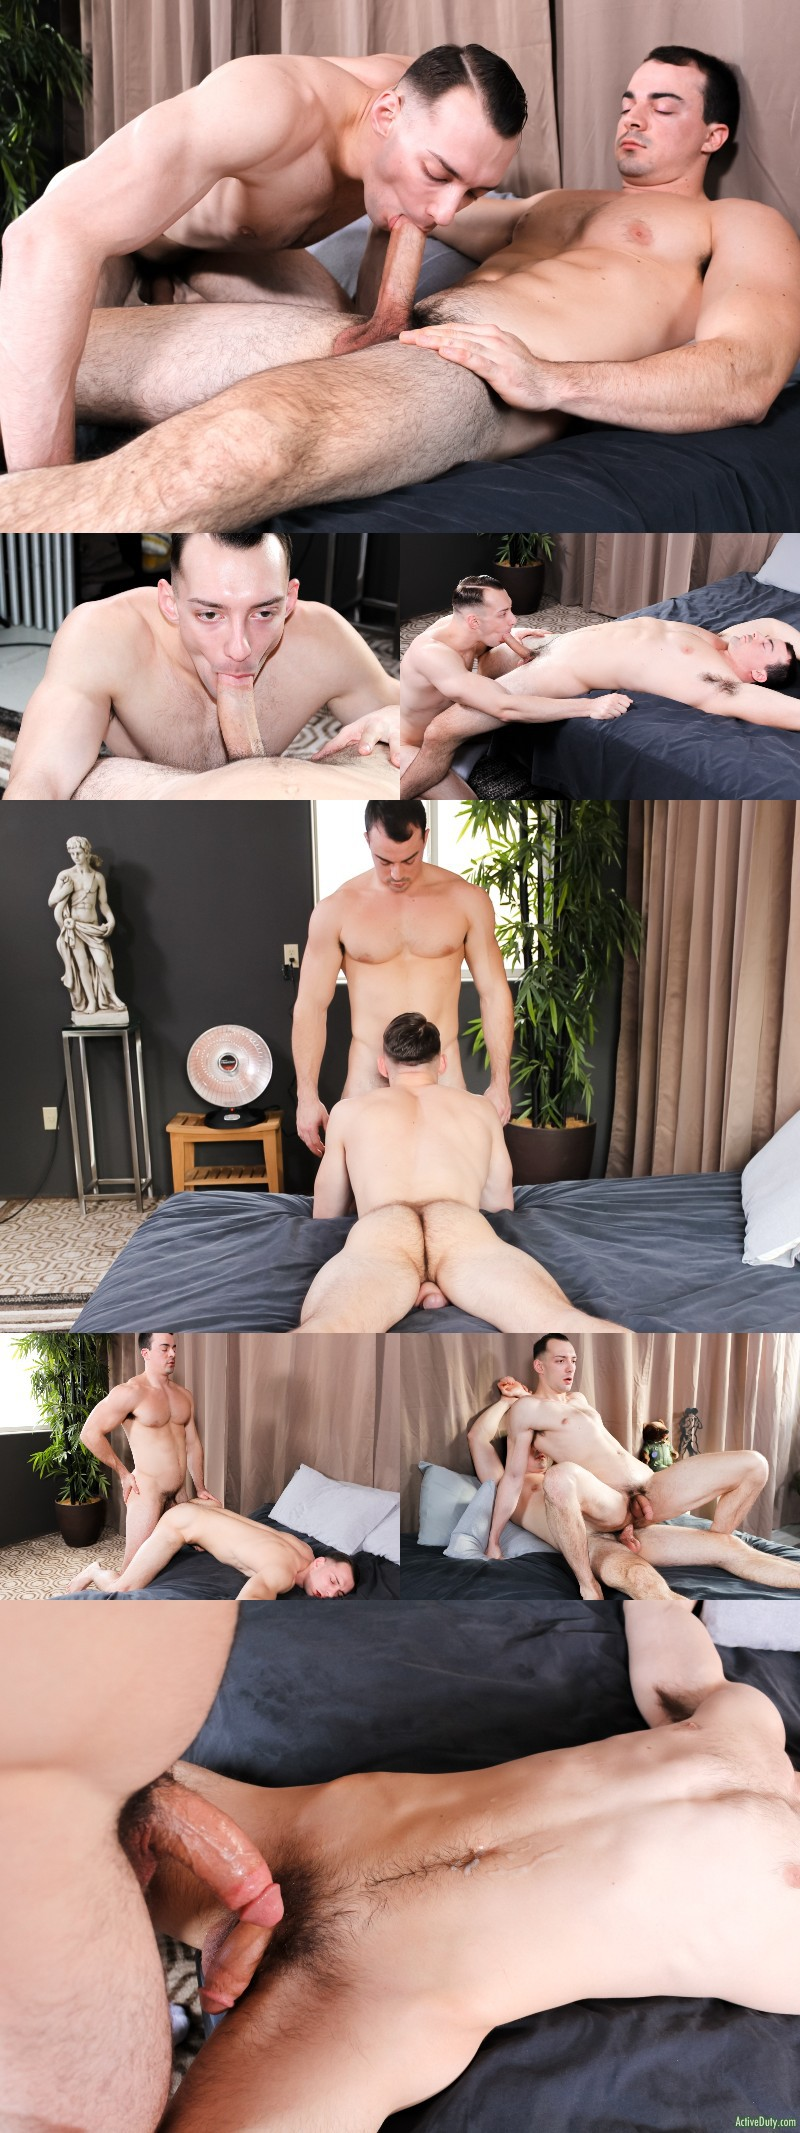 A Very Nervous Alex James Does His First Guy-on-Guy Sex Scene